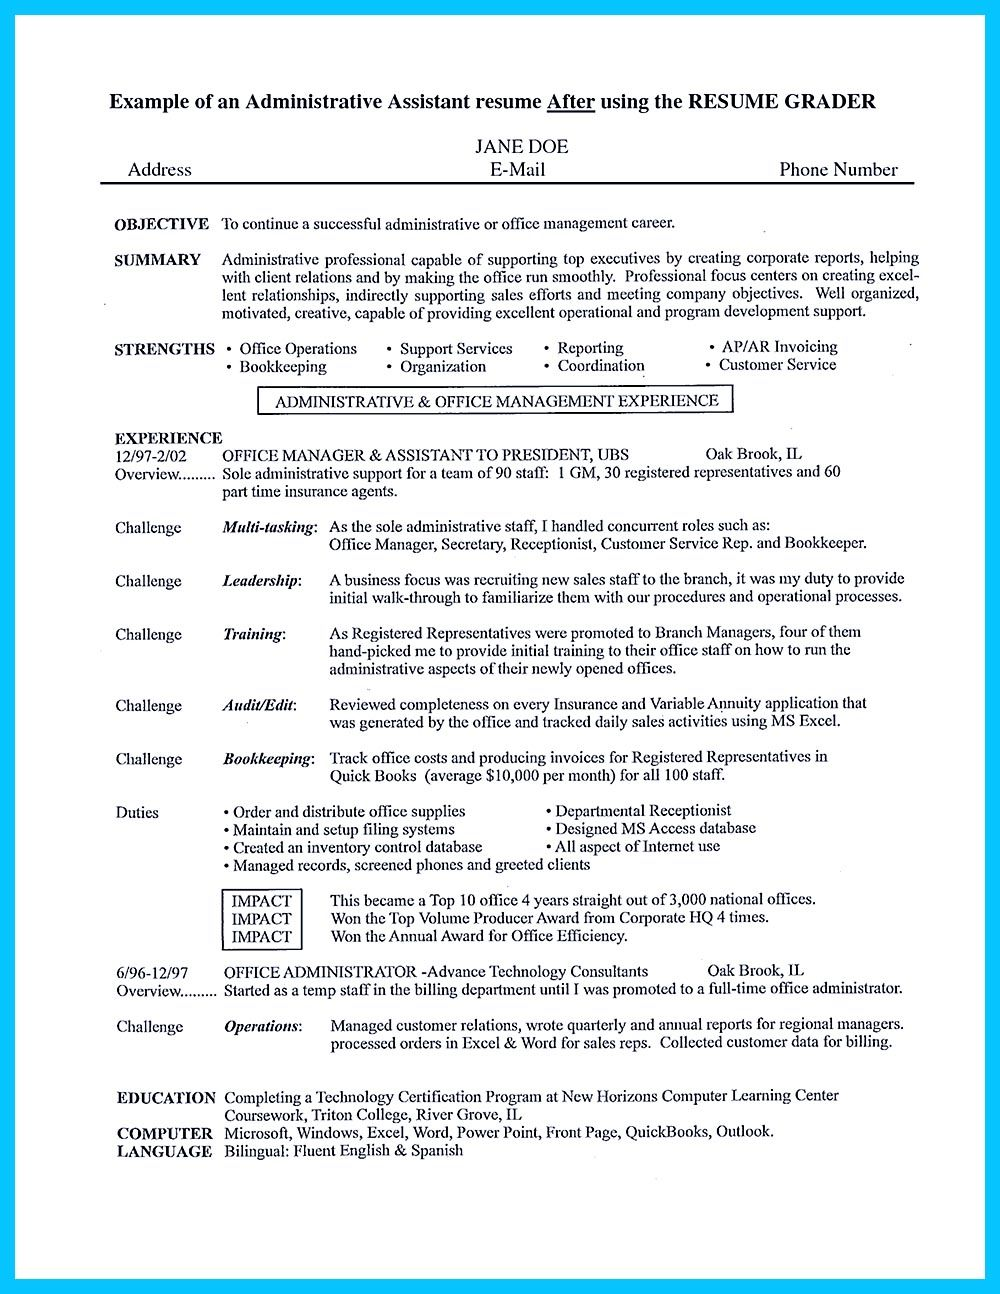 High Quality Entry Level Administrative Assistant Resume Samples Medical Assistant Resume Administrative Assistant Resume Resume Objective Examples